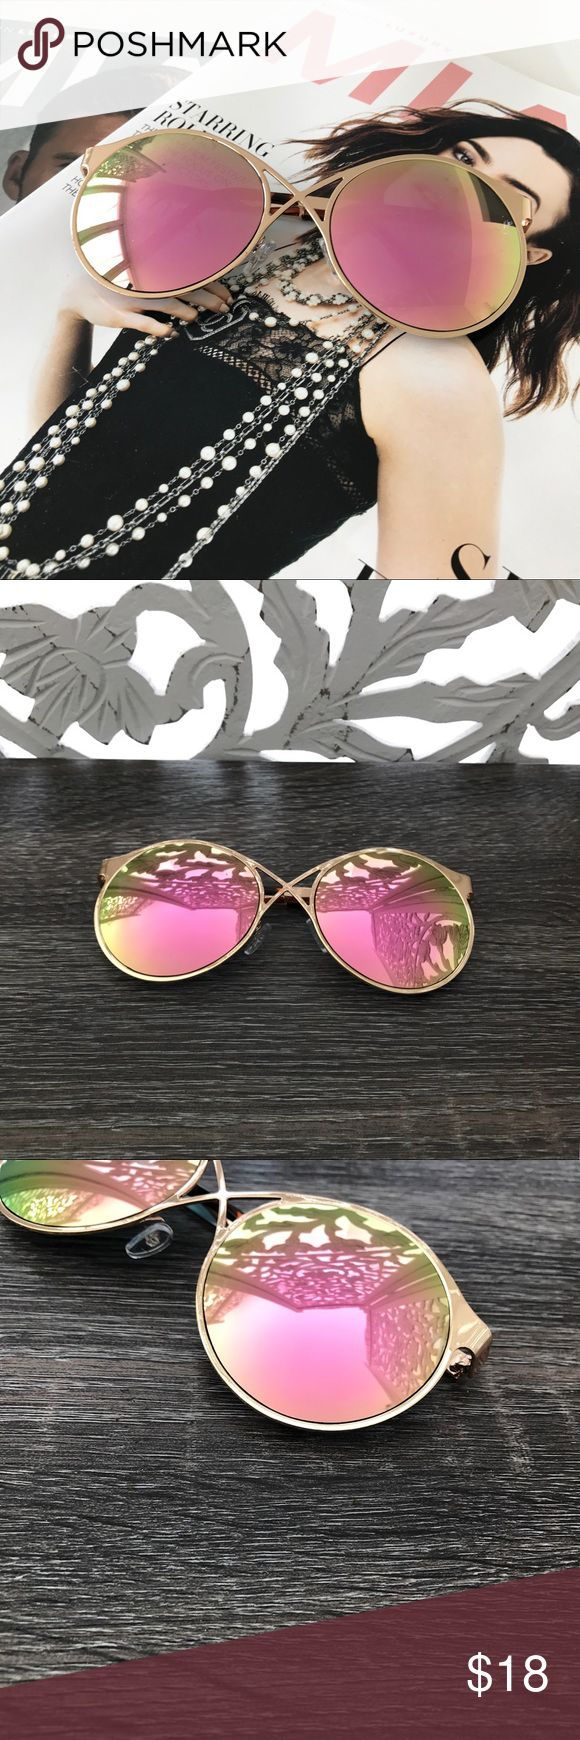 300K SALE▫️PINK MIRROR LENS ROUND SUNGLASSES * Round Lens * Front cross detail  * Pink Mirror Lens * Gold metal frame  * Approximate measurements: Full length 6in; Individual lens 2.5in H x 2.5in W * PRICE FIRM Style Link Miami Accessories Sunglasses